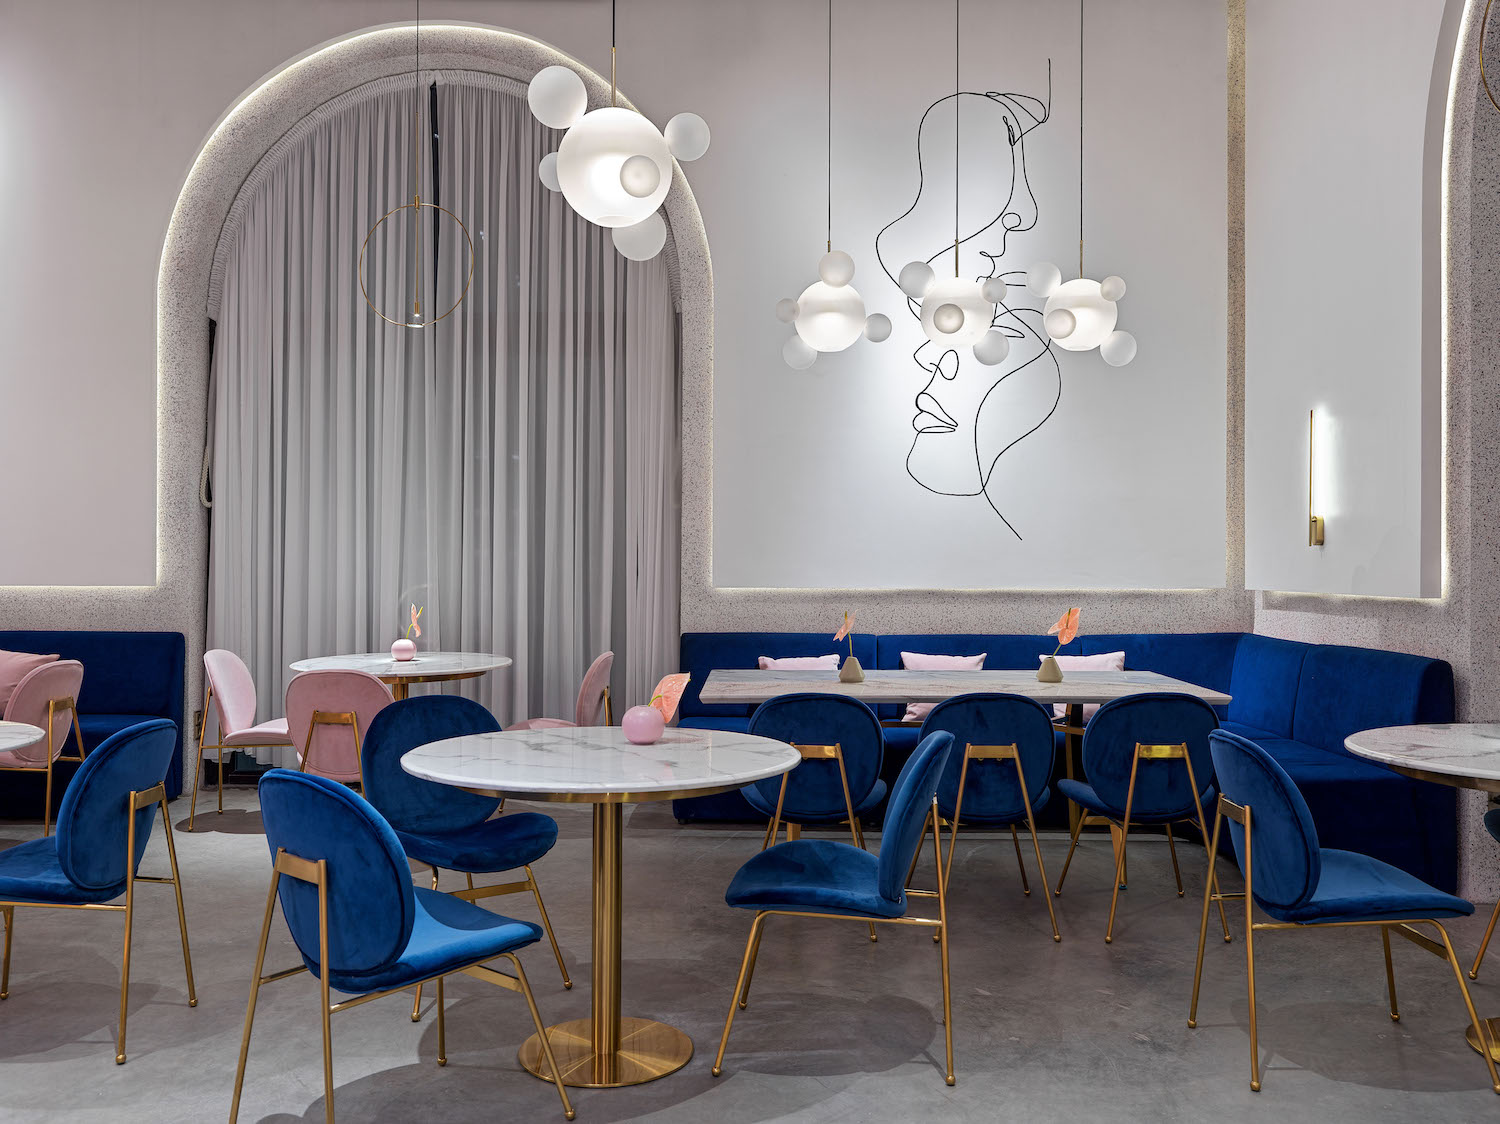 circular pendant lamps hanged over circular tables and blue chairs